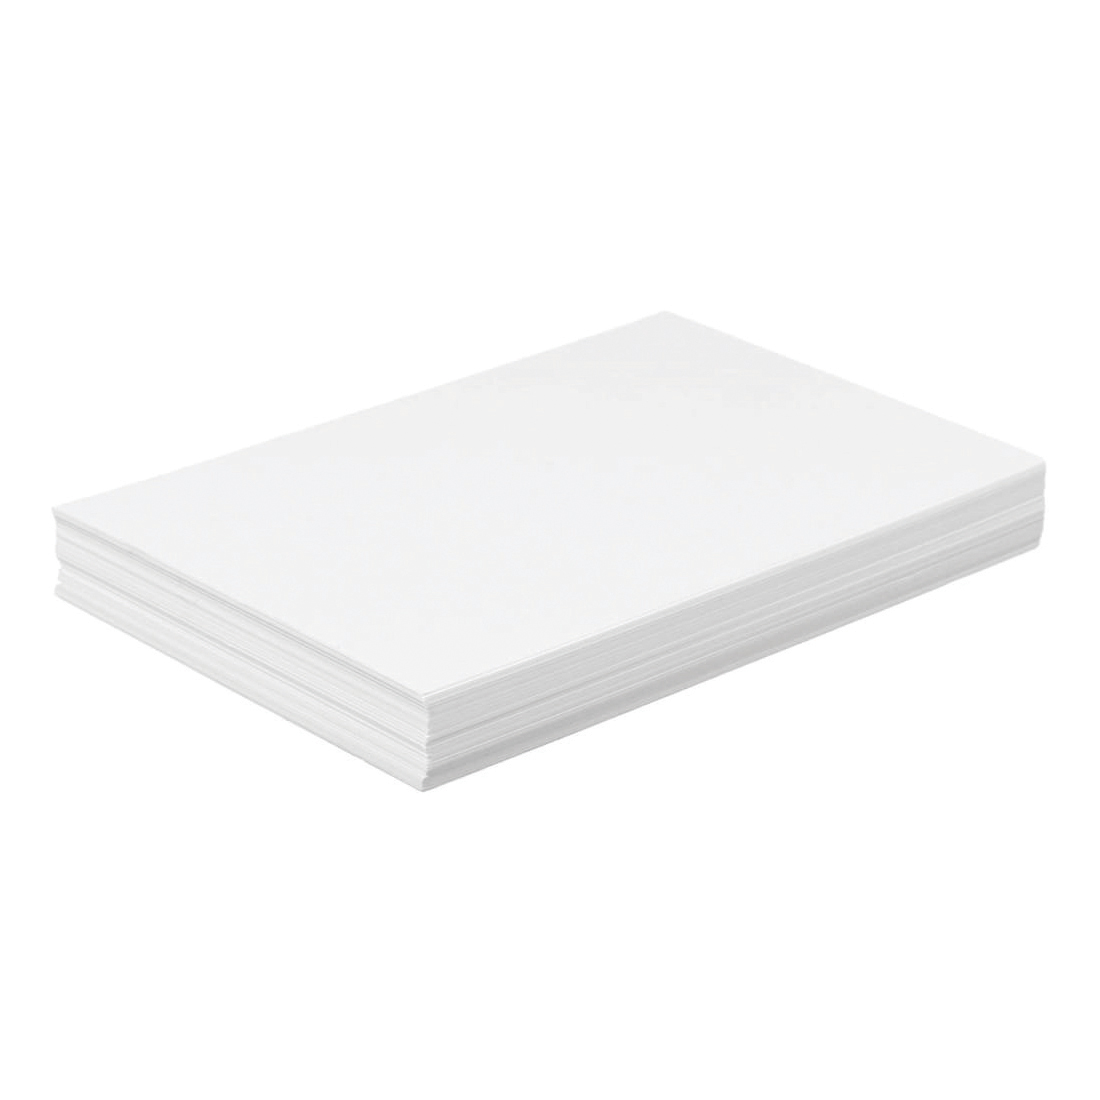 WhiteBox A4 Paper Ream-Wrapped [500 sheets]